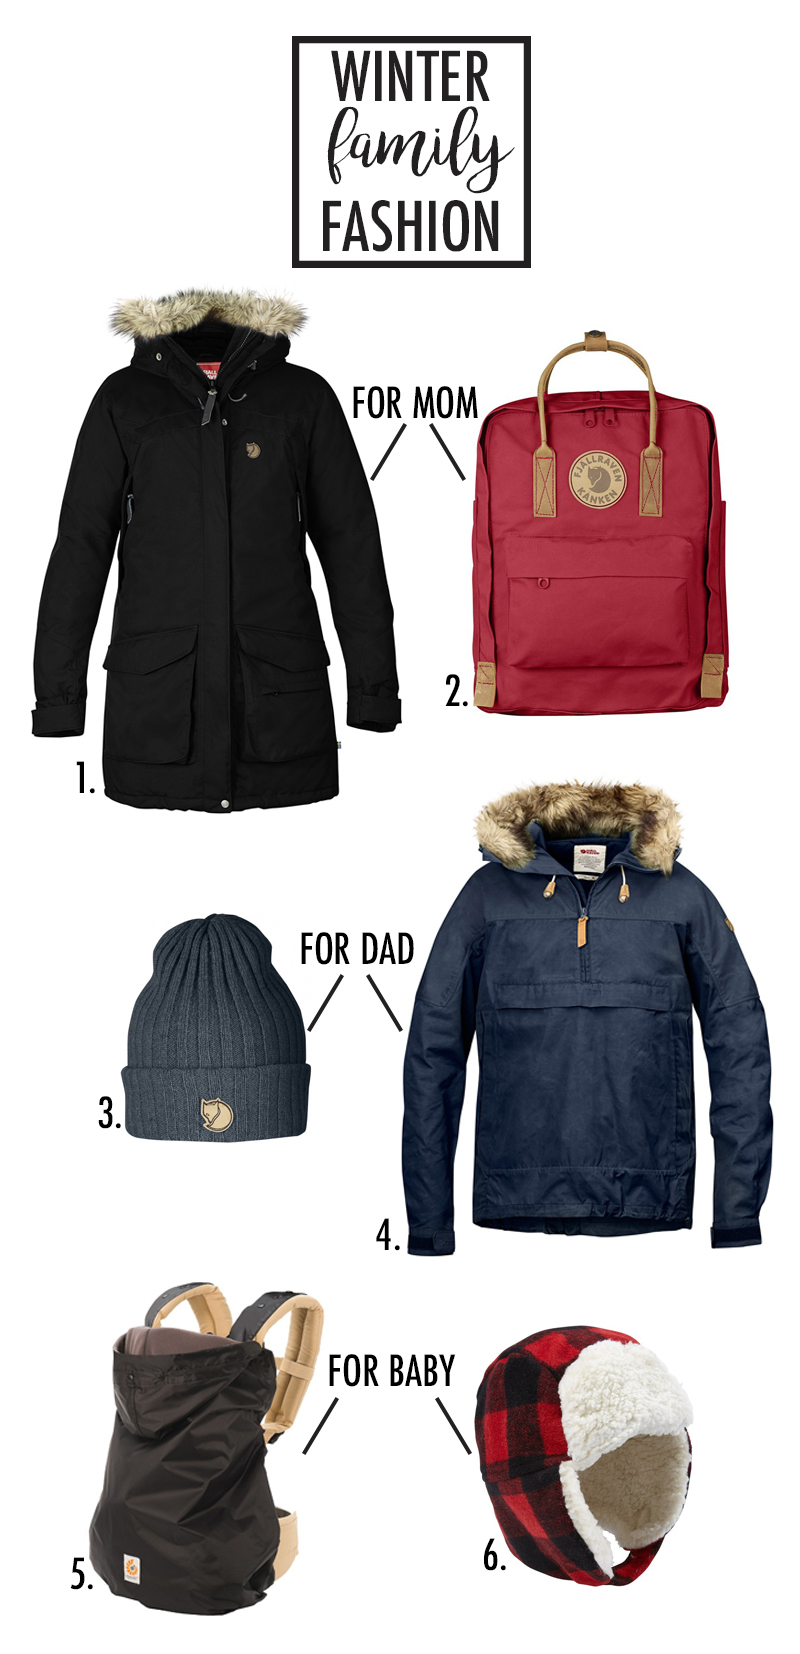 Winter fashion feat. Fjallraven